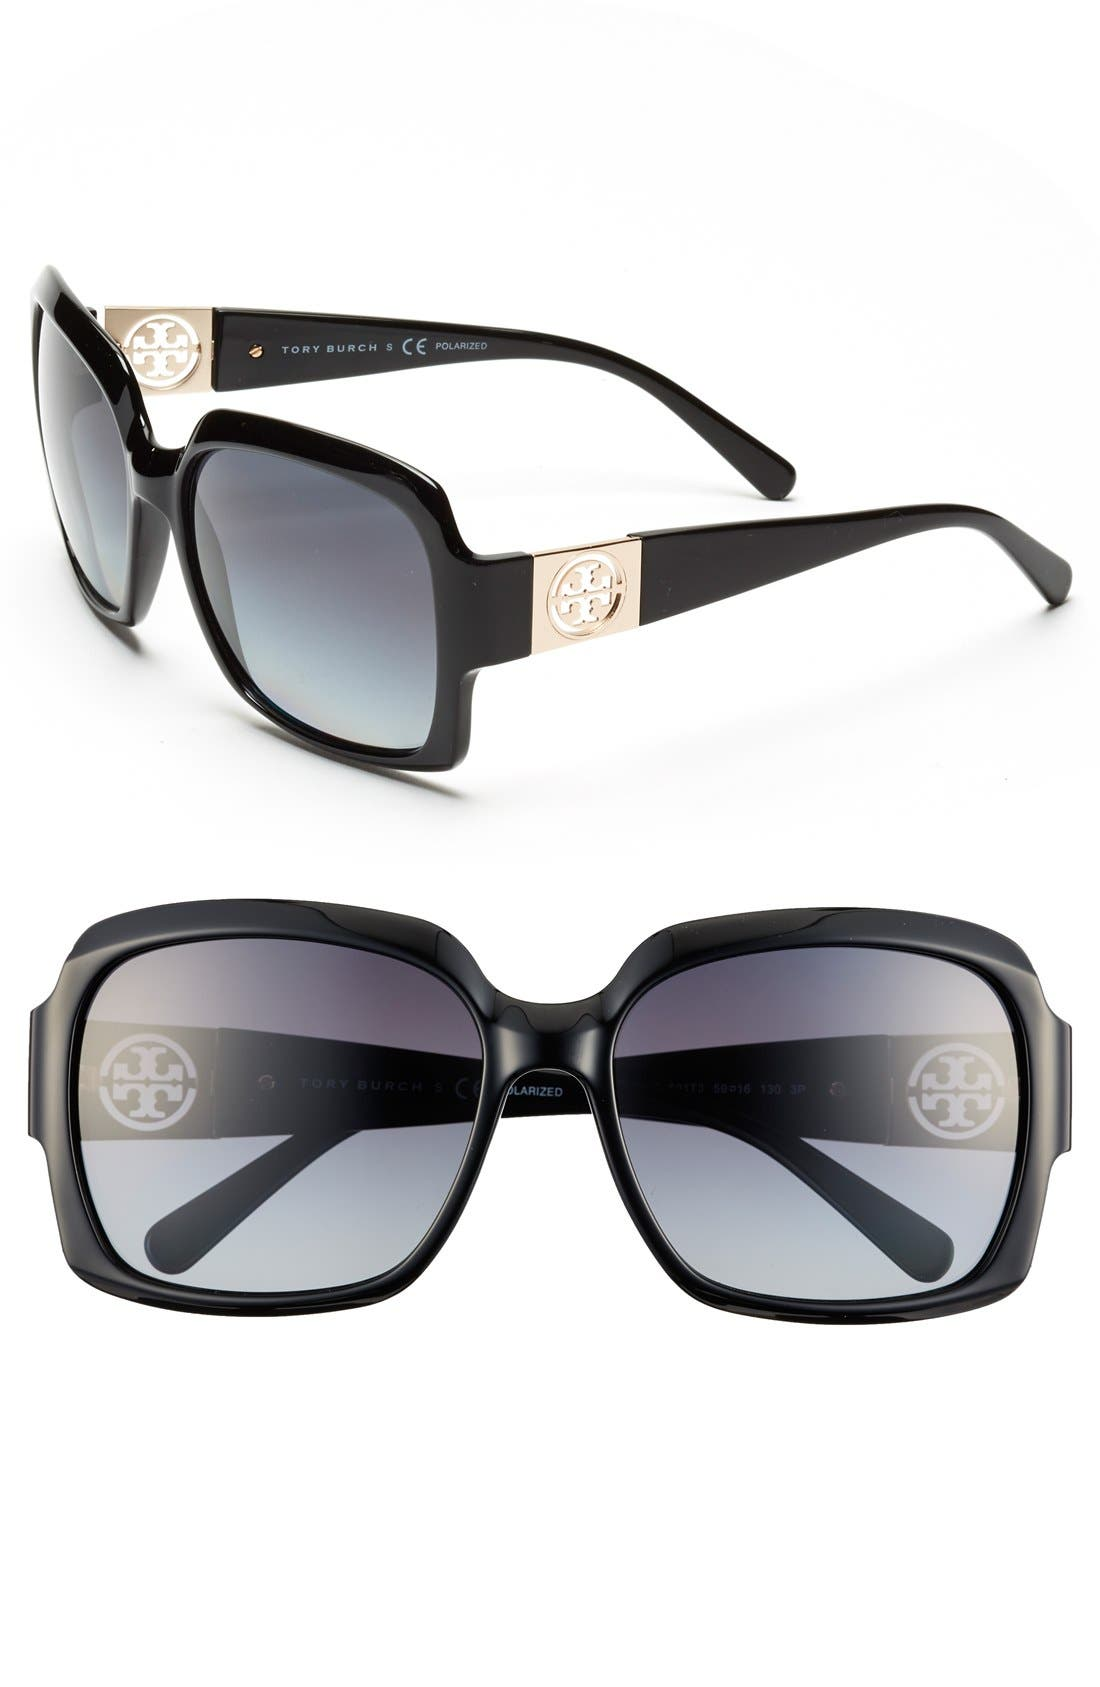 Main Image - Tory Burch 59mm Polarized Sunglasses